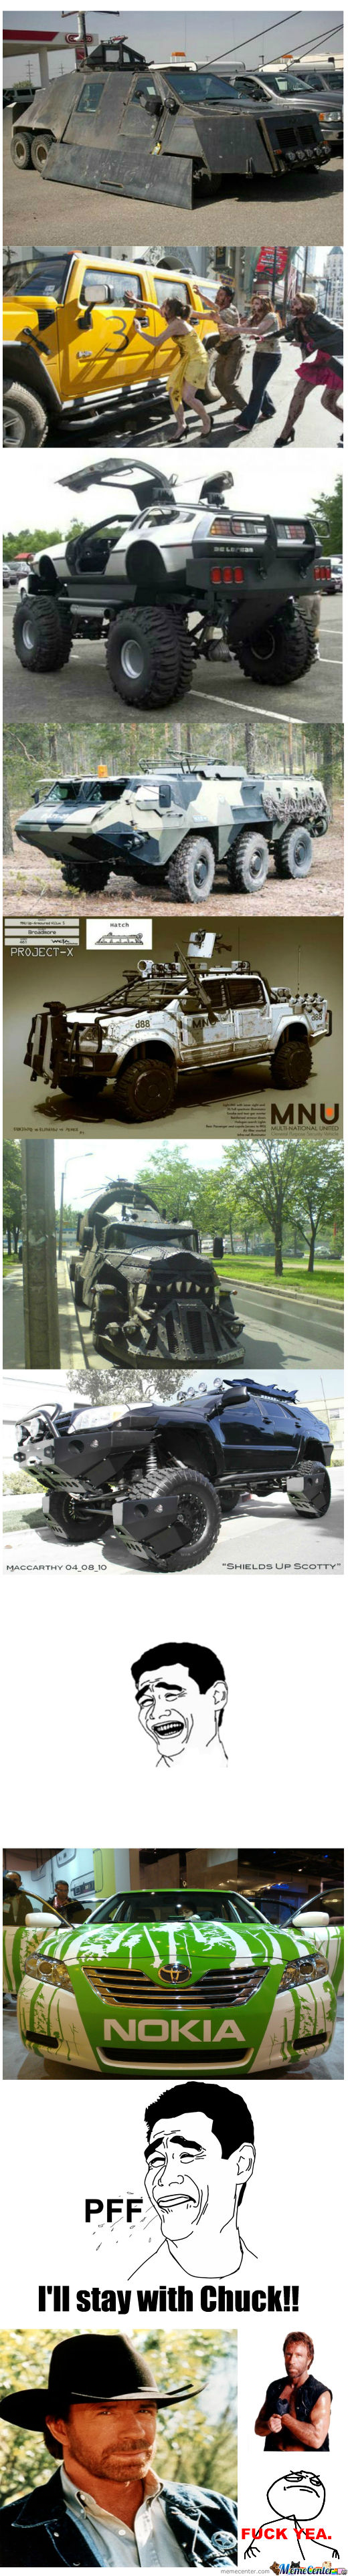 [RMX] Apocalypse Cars? B*tch Please..